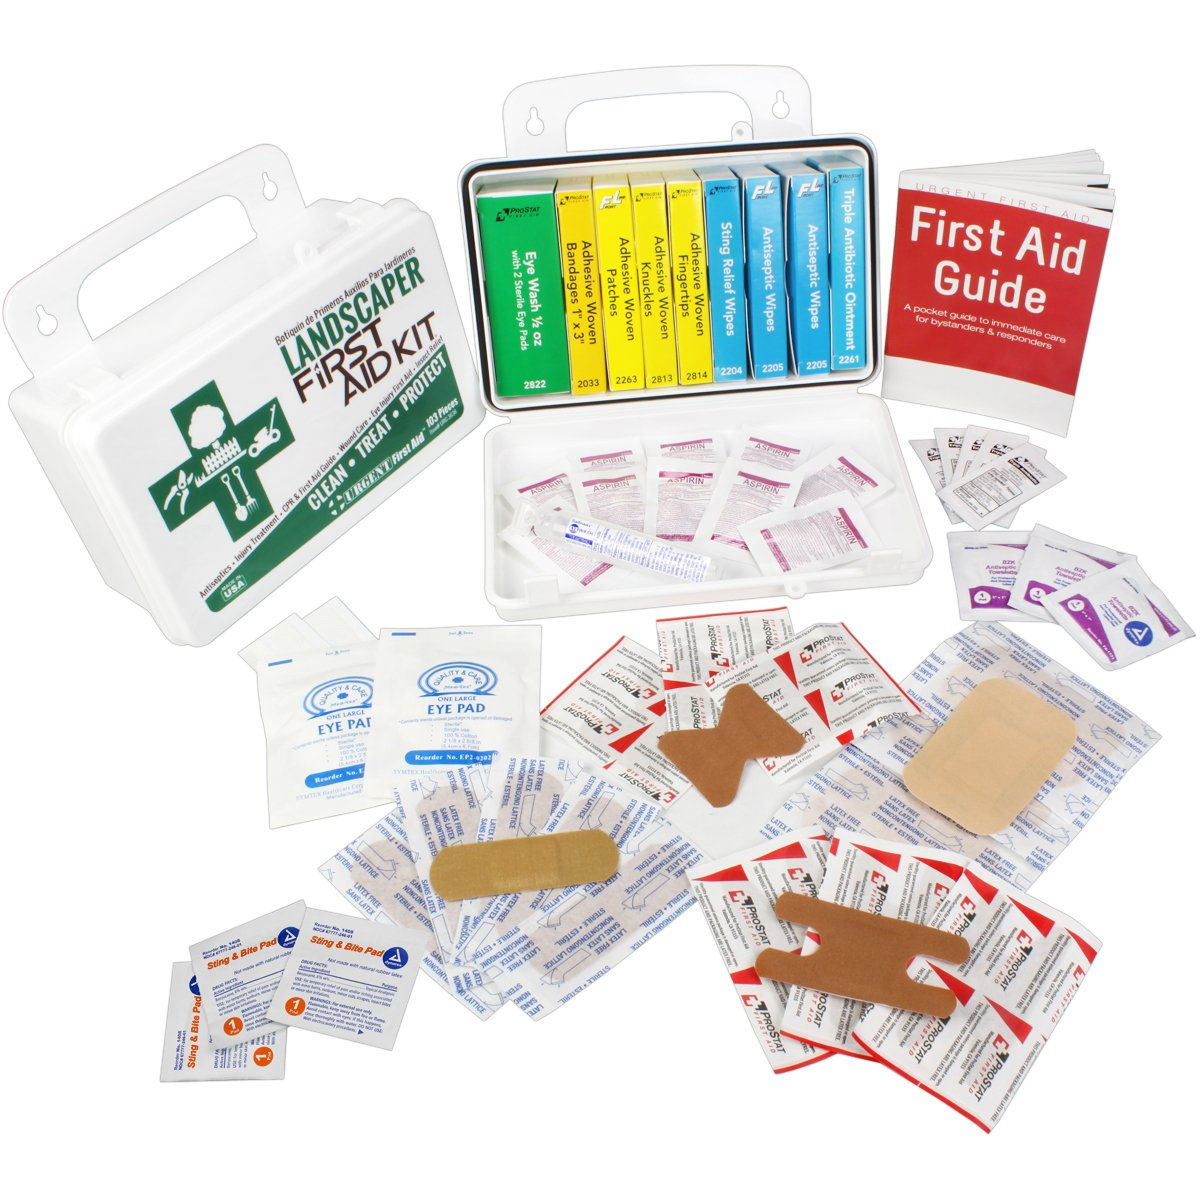 Landscaper & Tree Trimming First Aid Kit, OSHA Compliant, 10 Unit, 103 Piece, Plastic Case with Gasket to keep out moisture and dust - be OSHA Compliant: Special Extra first aid item content, too by Urgent First Aid (Image #2)